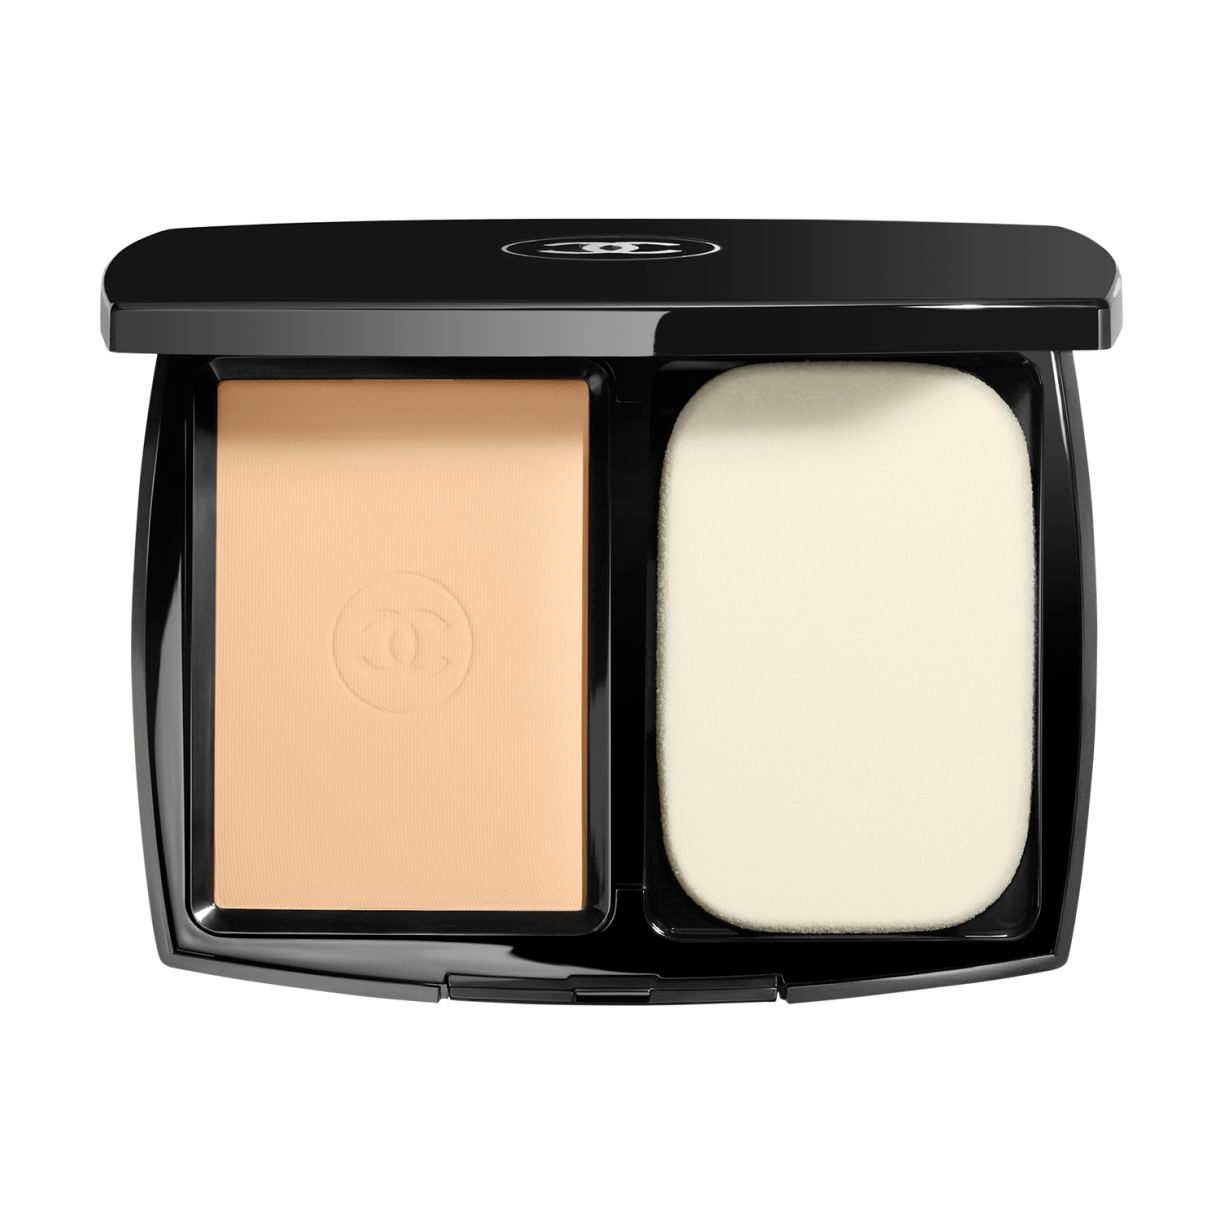 LE TEINT ULTRA TENUE ULTRAWEAR FLAWLESS COMPACT FOUNDATION 10 - BEIGE